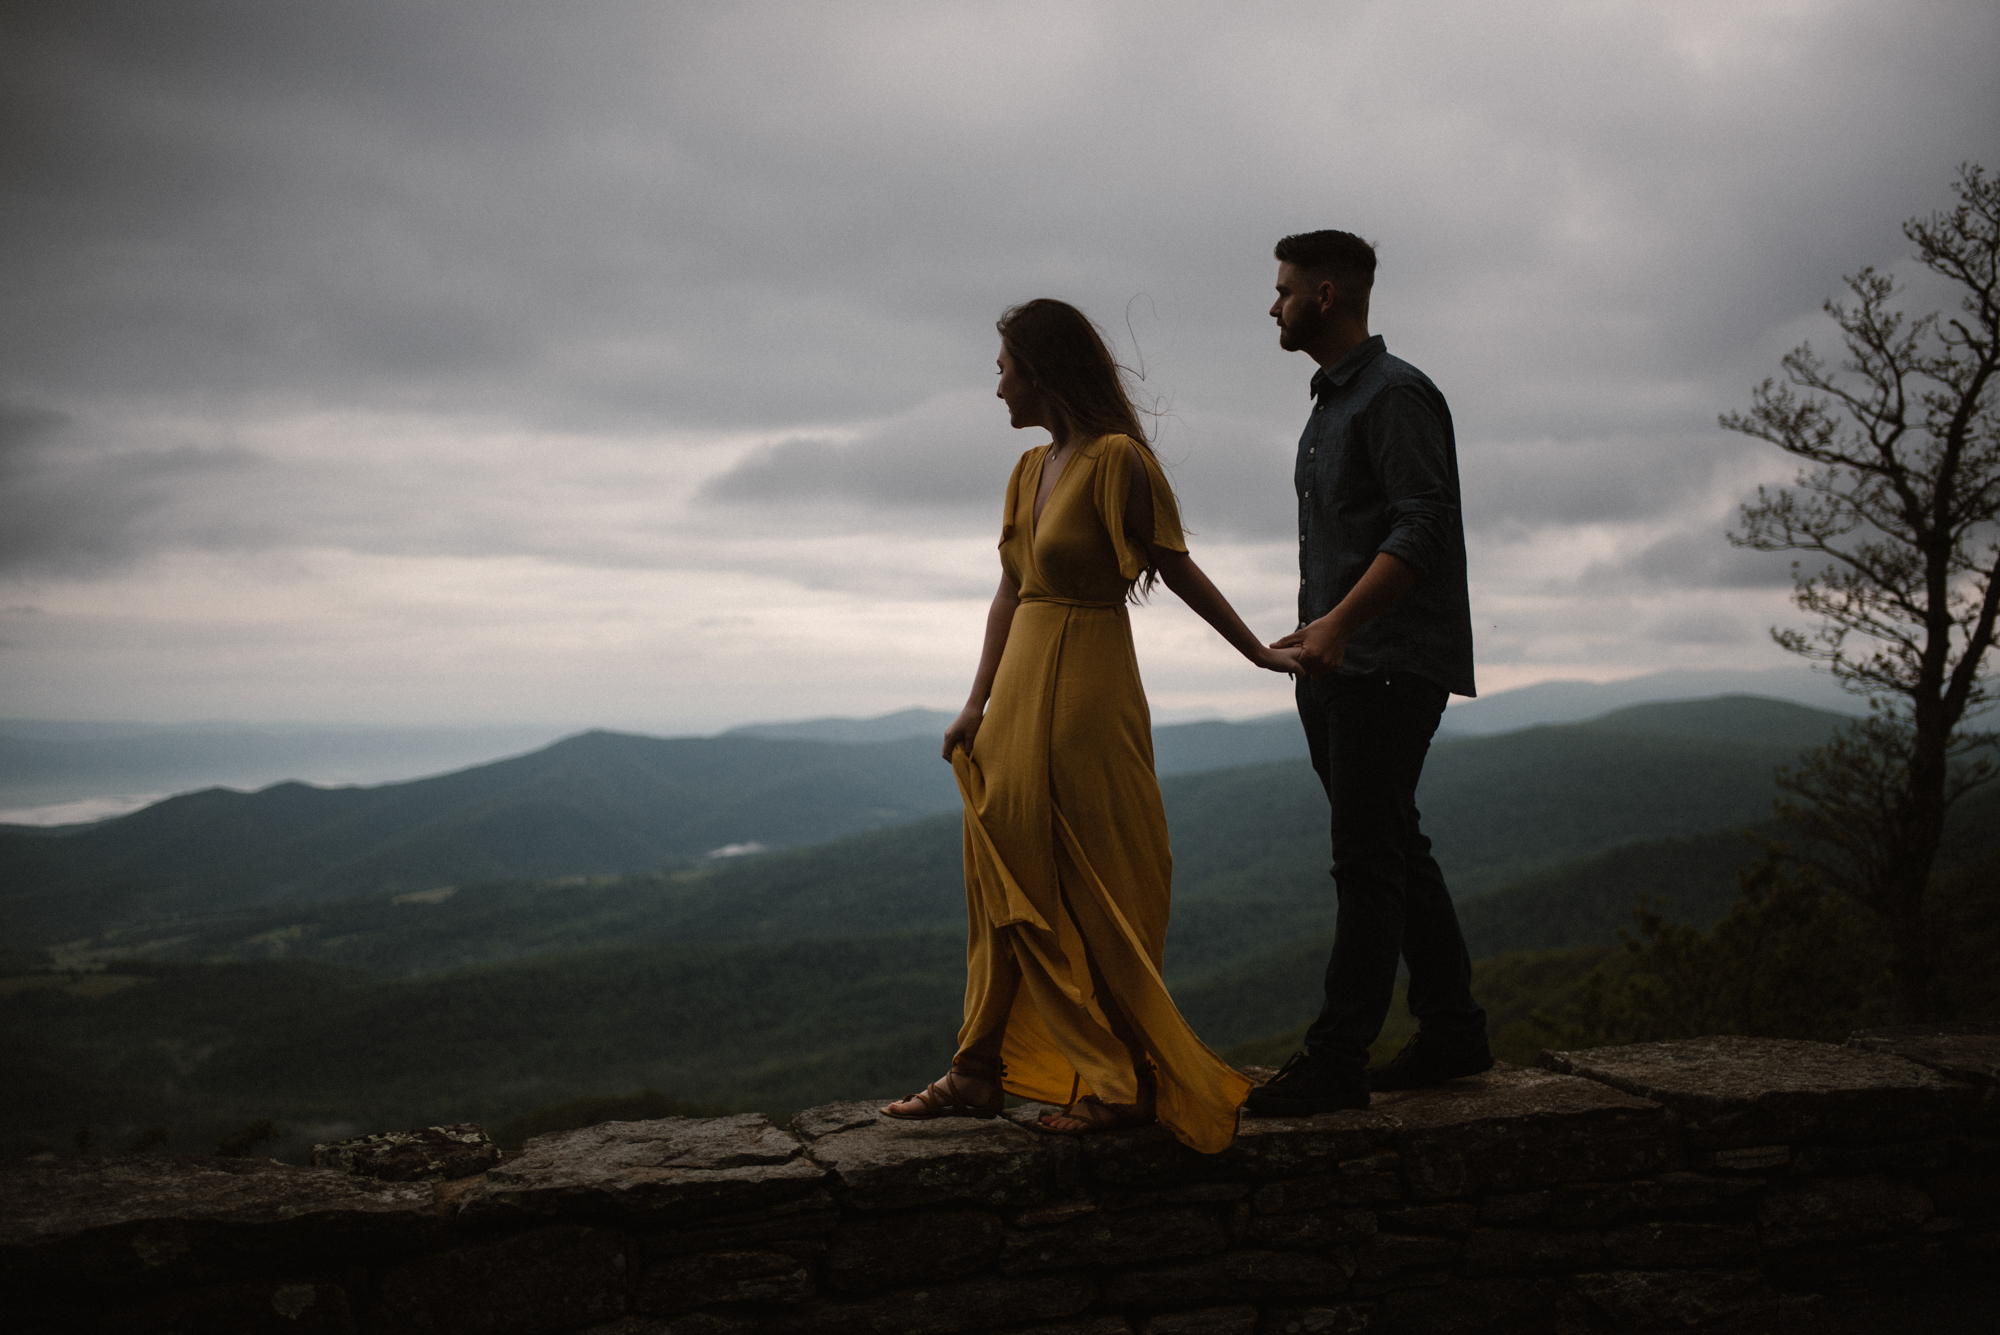 Camryn and Larry Sunrise Engagement Session in Shenandoah National Park - Things to Do in Luray Virginia - Adventurous Couple Photo Shoot White Sails Creative_17.jpg